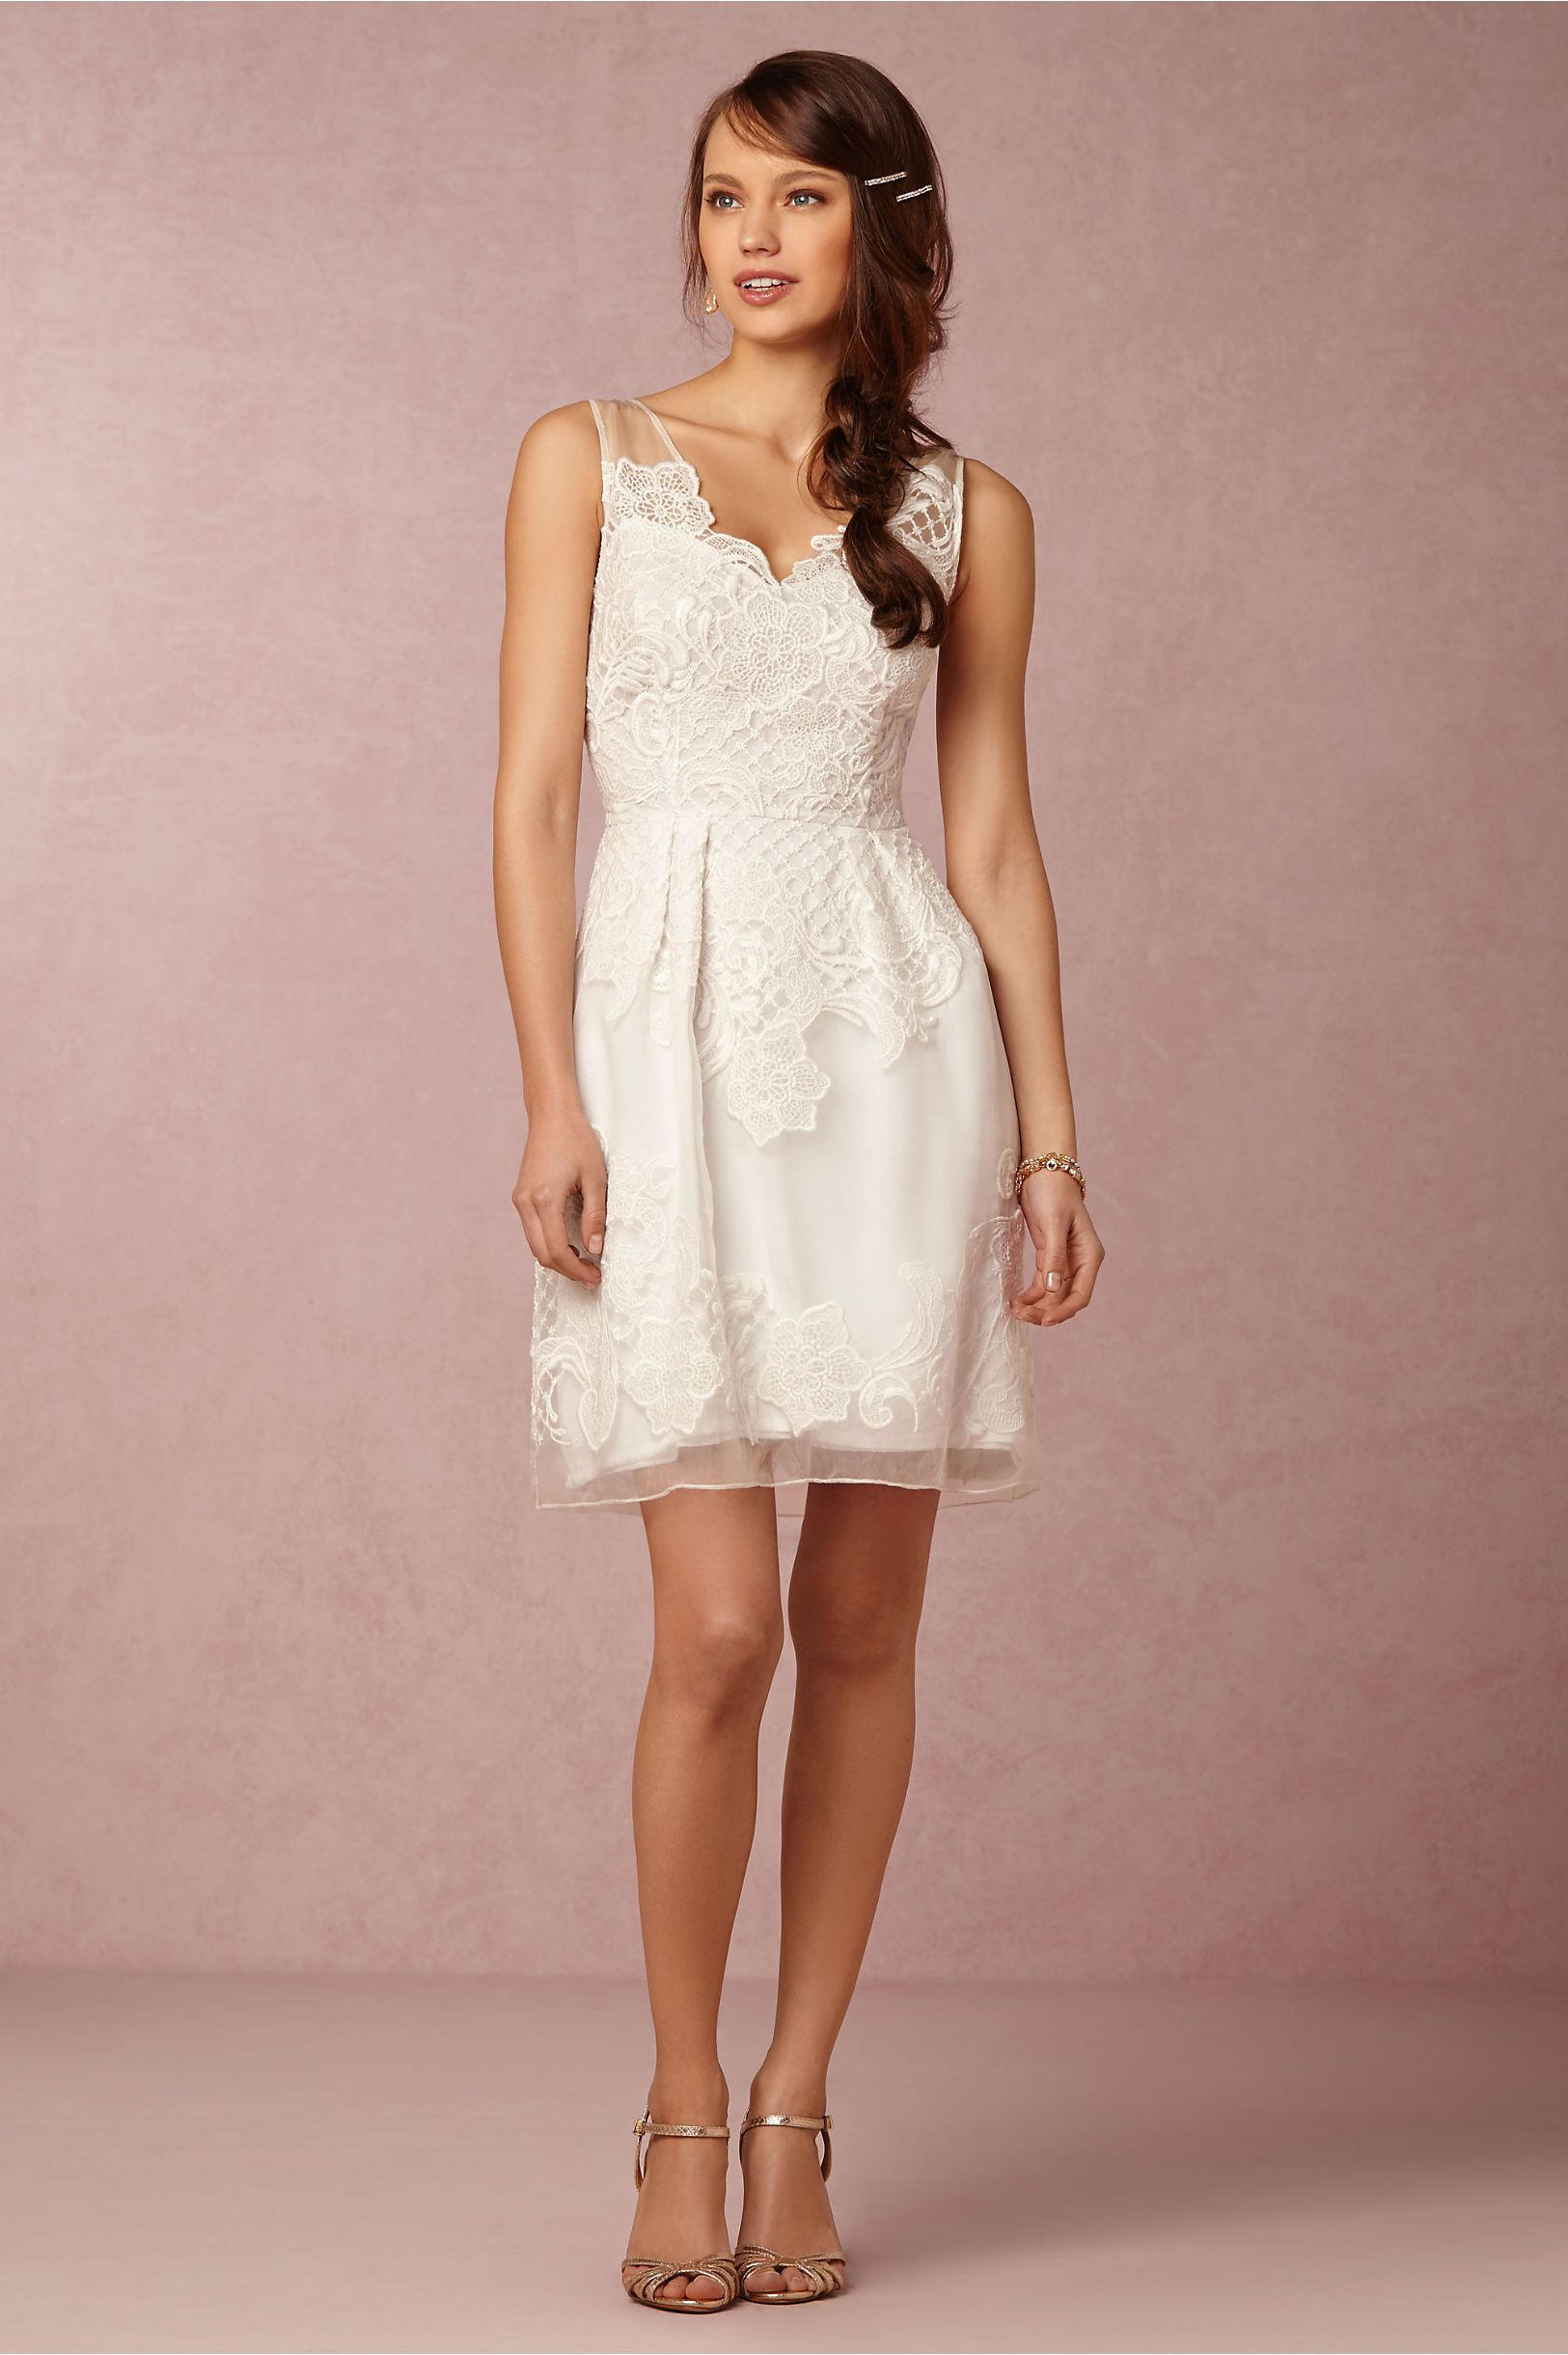 reception or bridal shower dress | Celestina Dress from @BHLDN | The ...